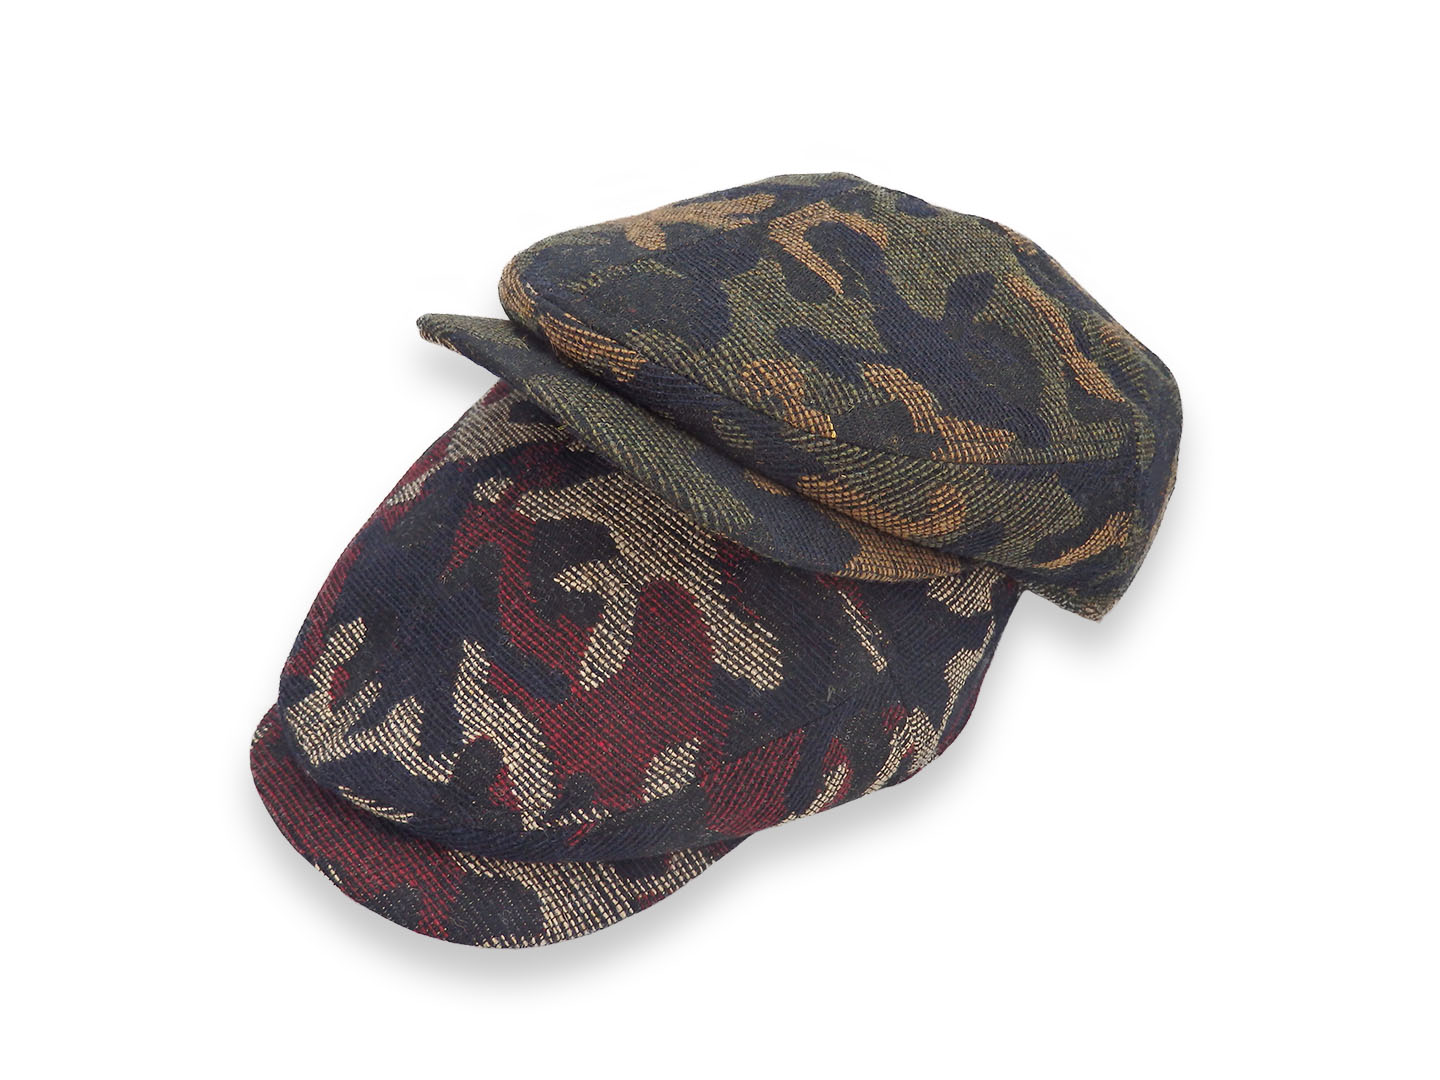 Wool Camouflage hunting / Made in Tokyo カモフラージュハンチング